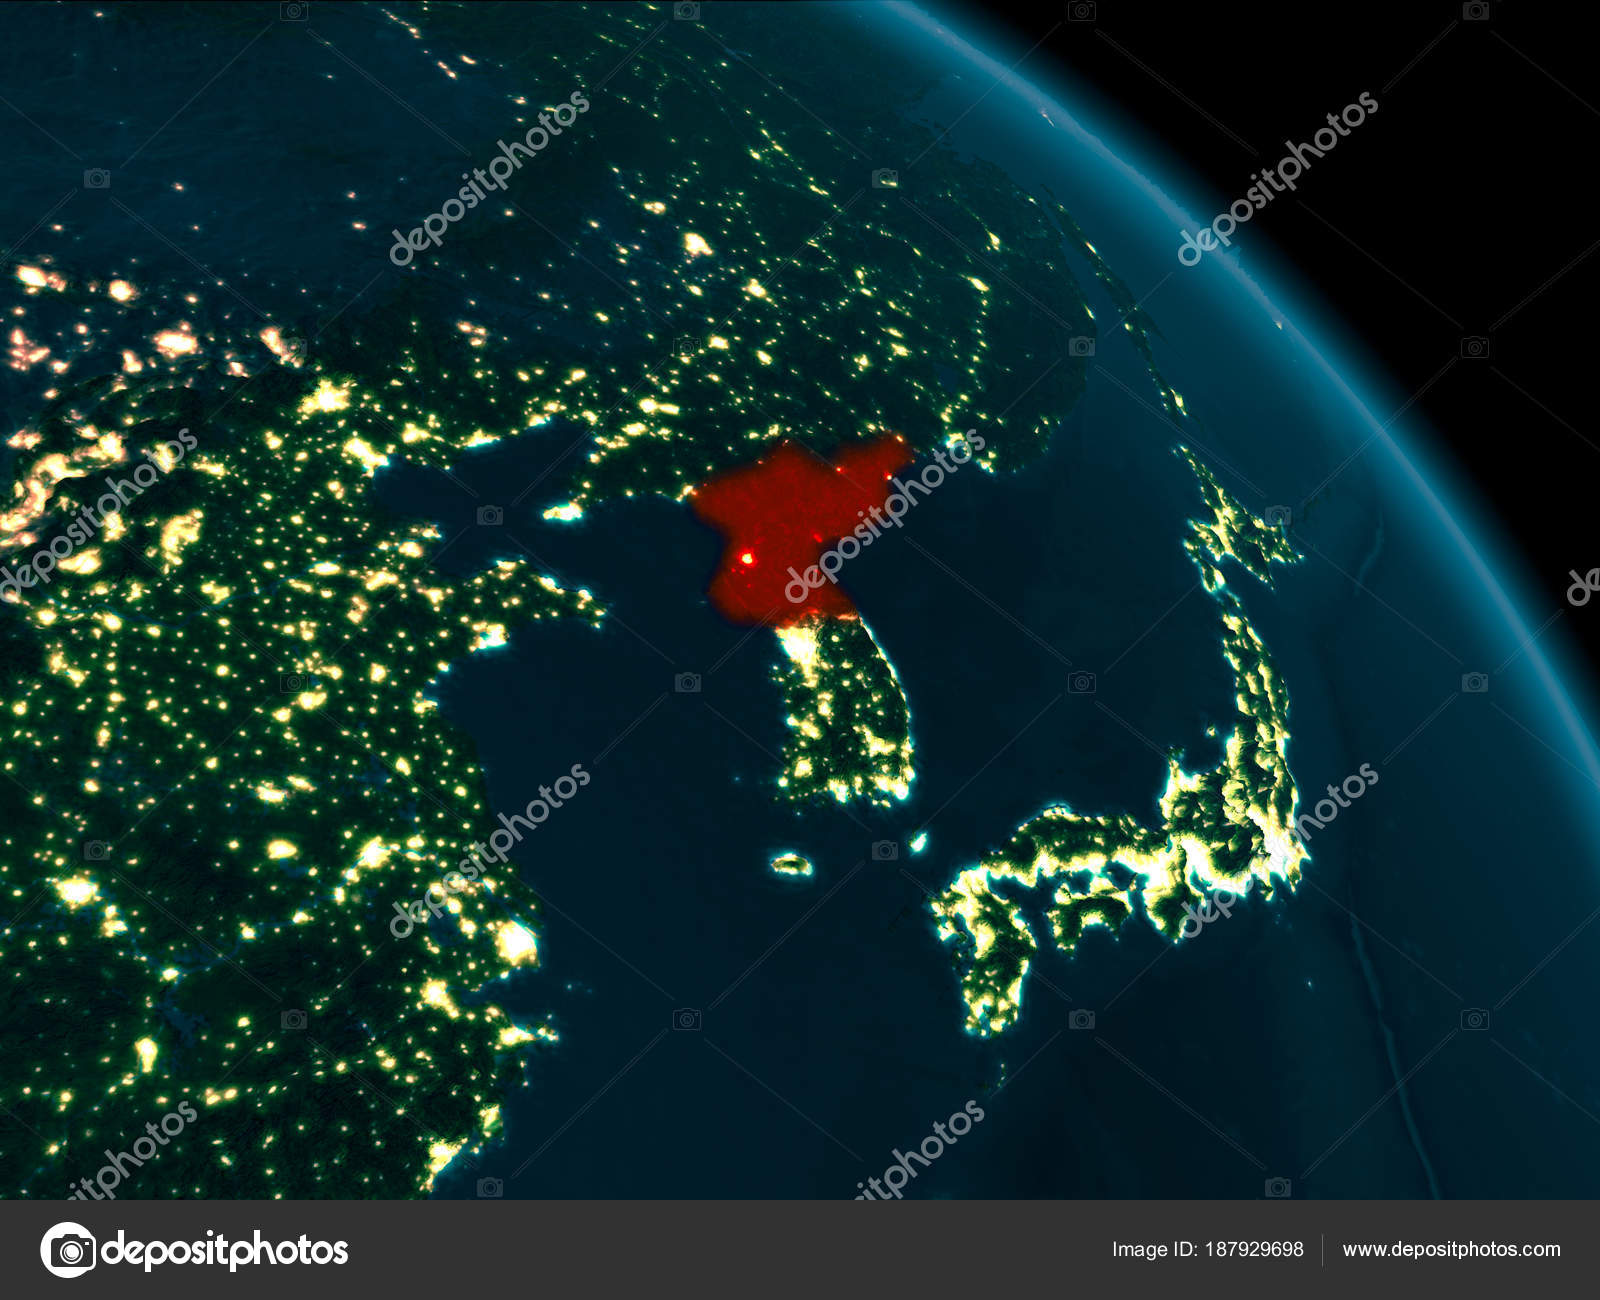 Night view of north korea on earth stock photo tomiger 187929698 night view of north korea on earth stock photo gumiabroncs Choice Image